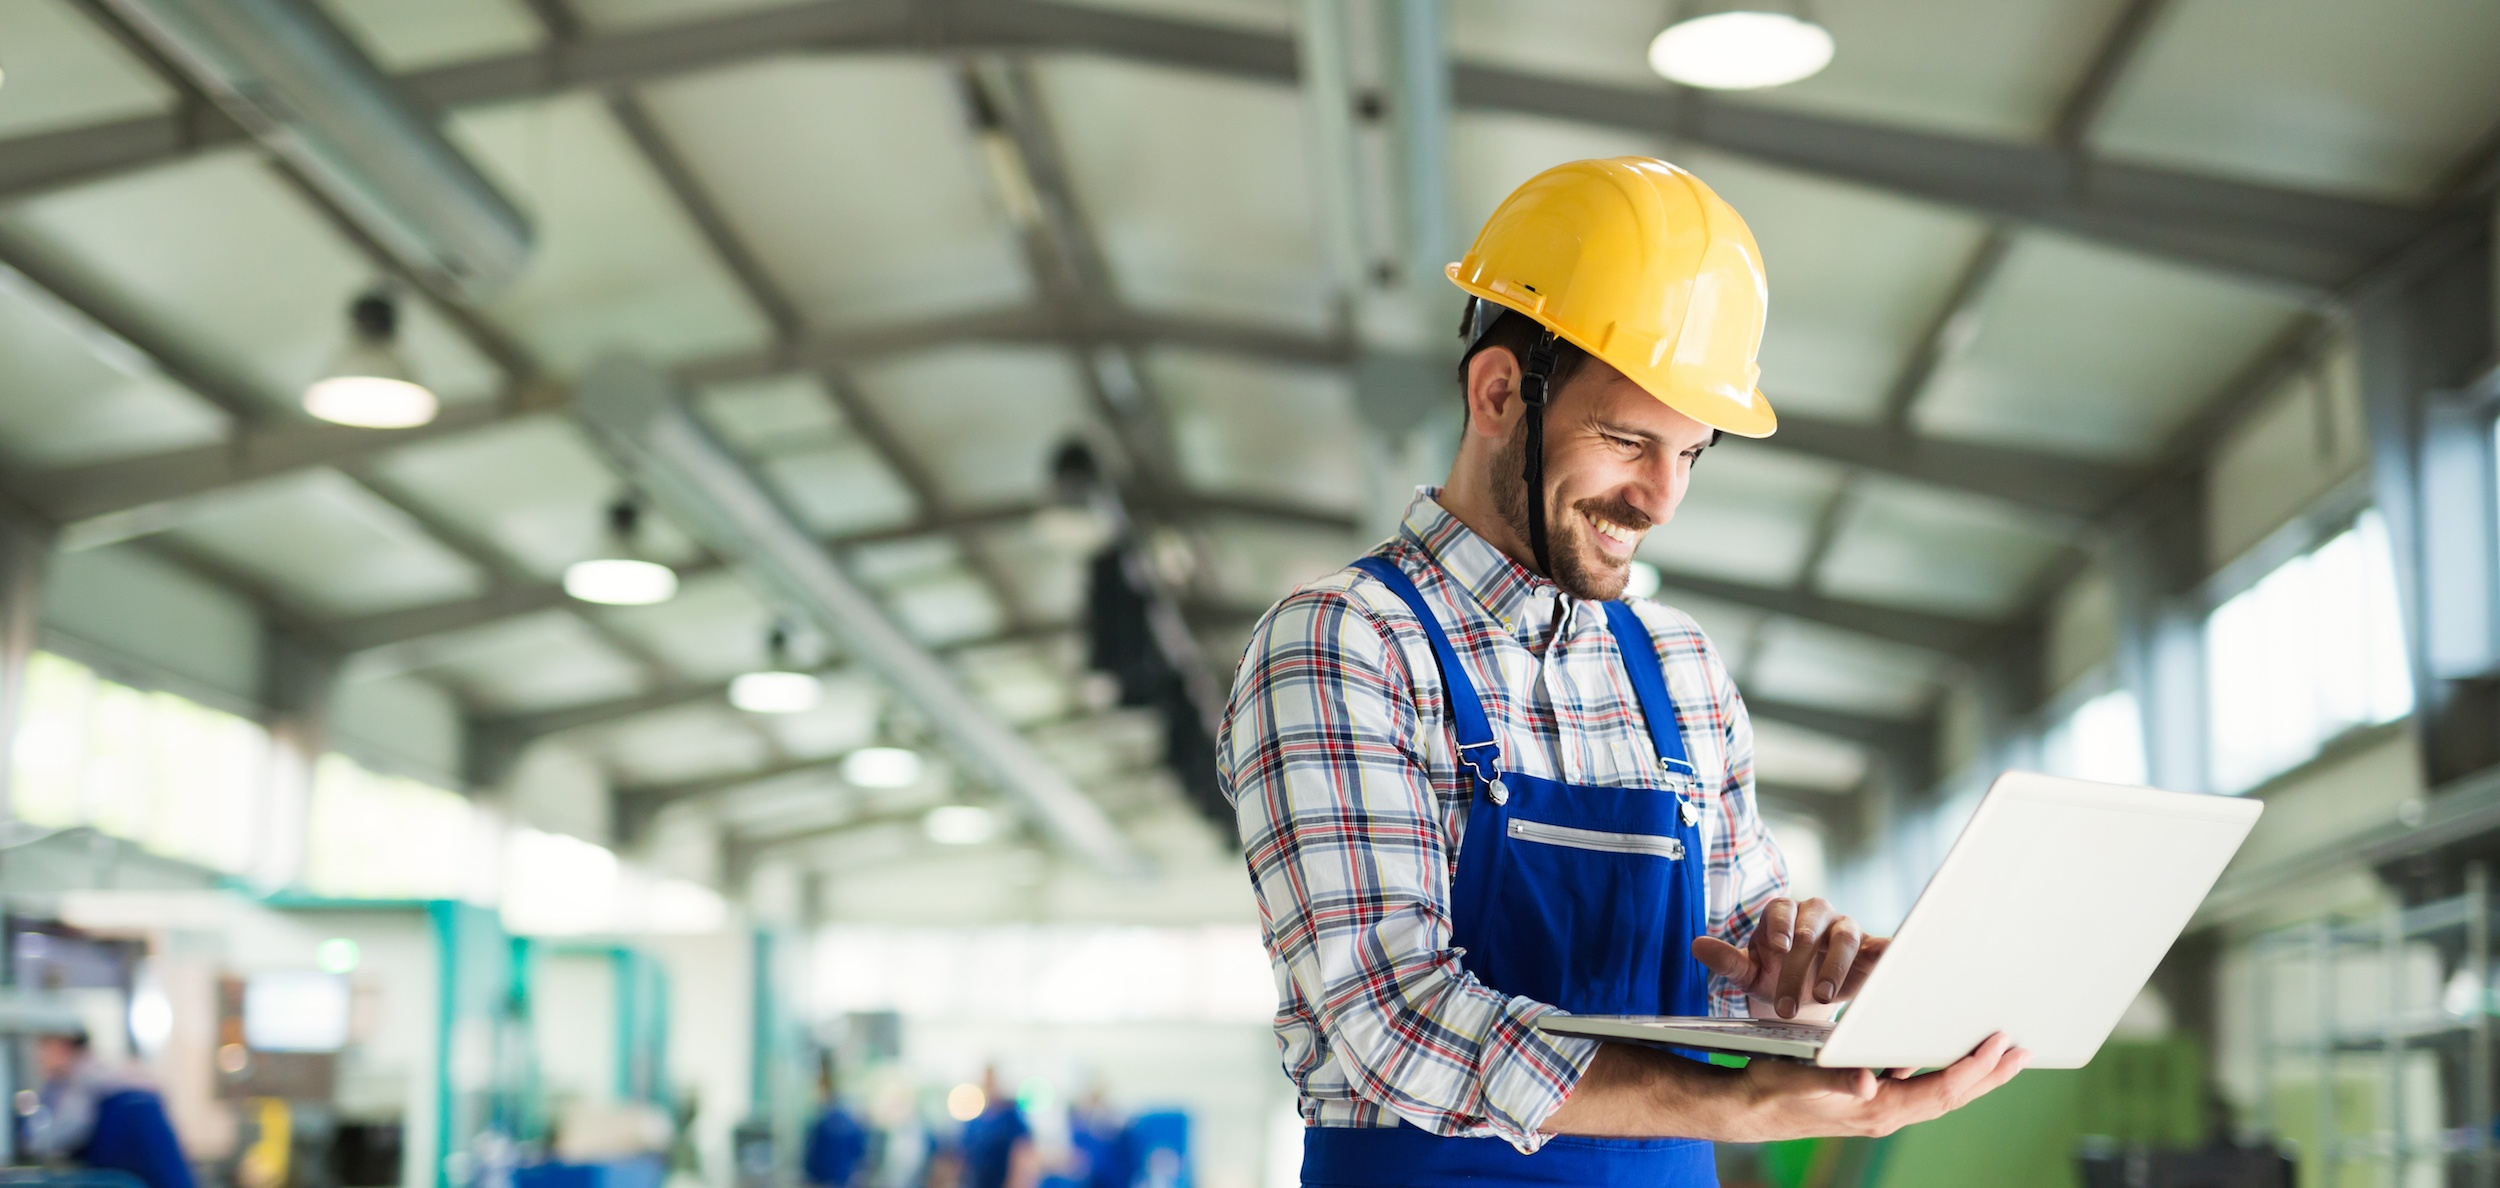 manufacturing plant happy because marketing growth